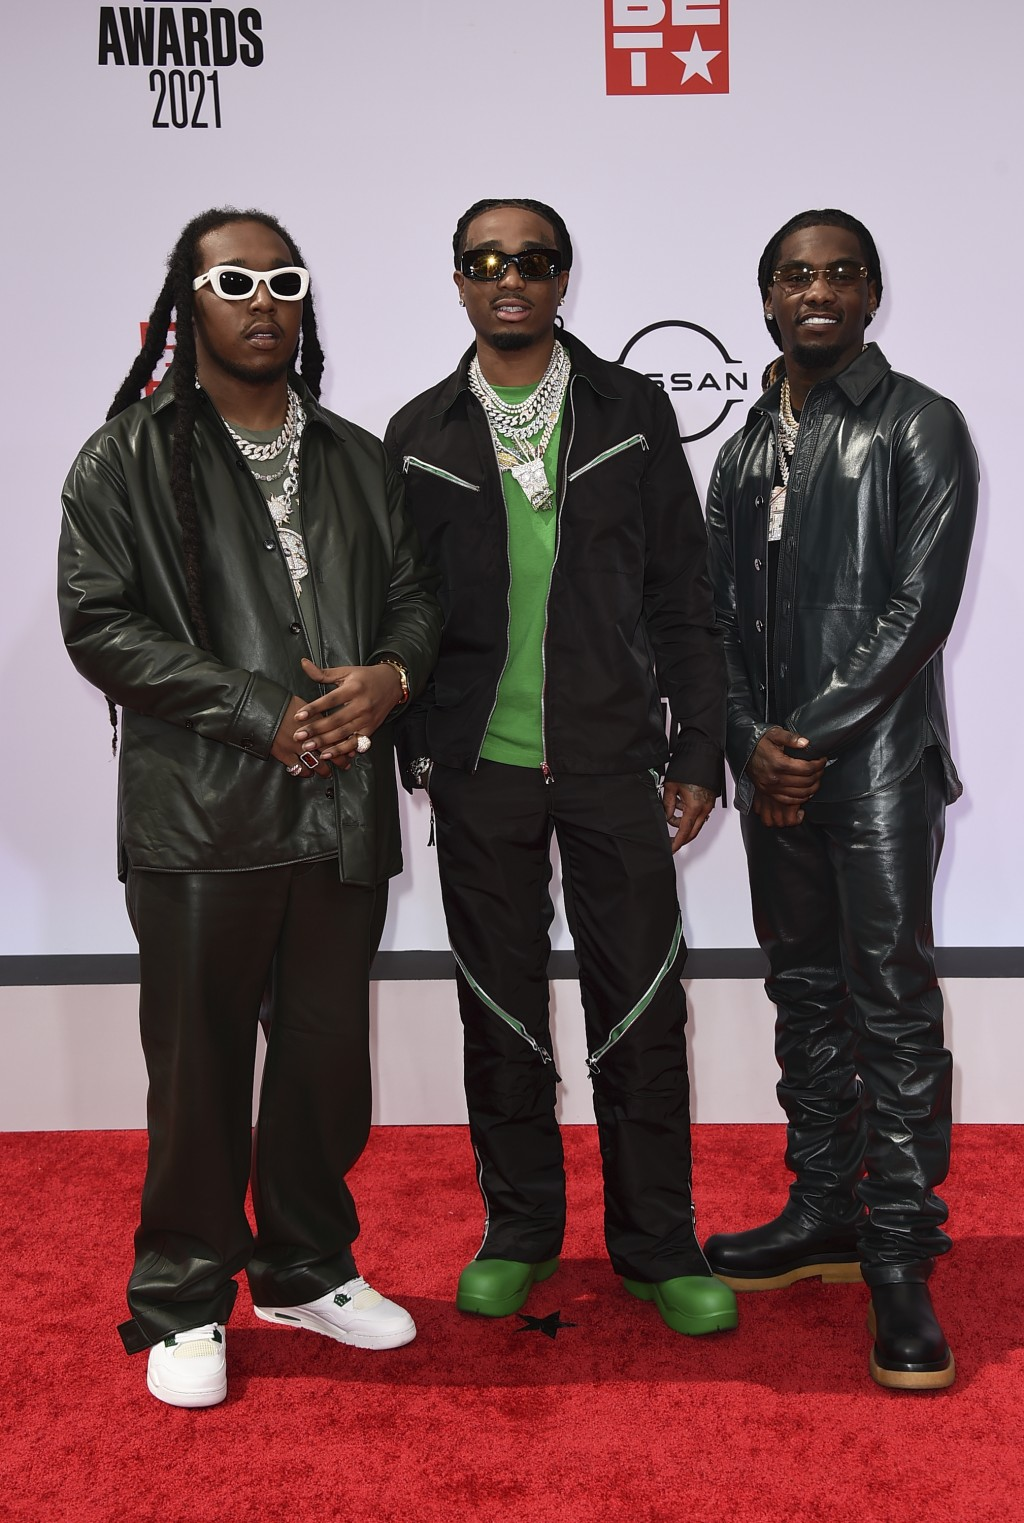 Takeoff, from left, Quavo and Offset, of Migos, arrive at the BET Awards on Sunday, June 27, 2021, at the Microsoft Theater in Los Angeles. (Photo by ...